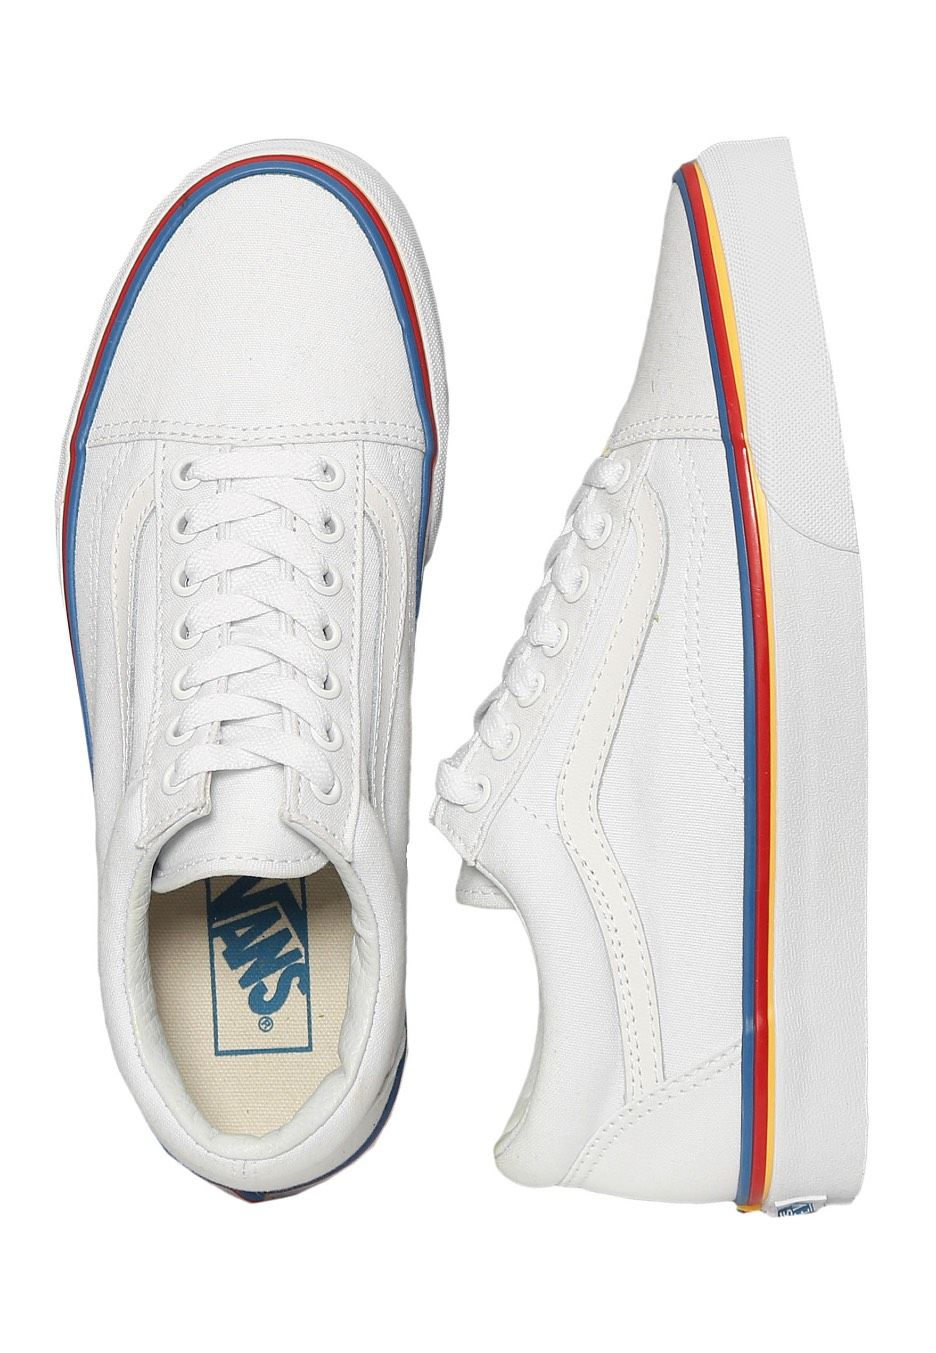 Vans Old Skool Rainbow Foxing True White Girl Schuhe im